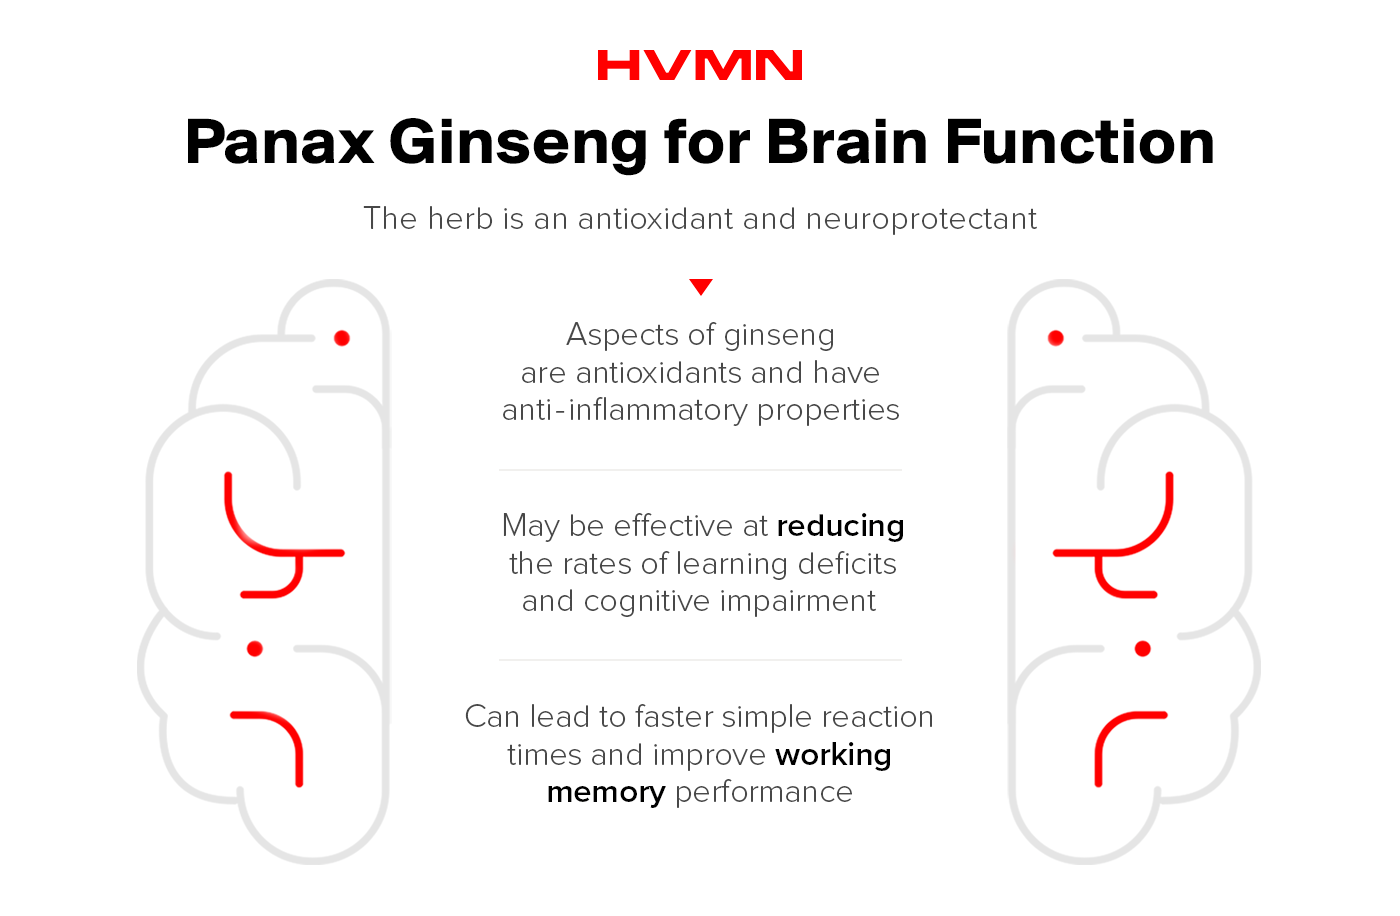 An illustration of brain, split in half, with all the benefits of panax ginseng for brain function on the inside